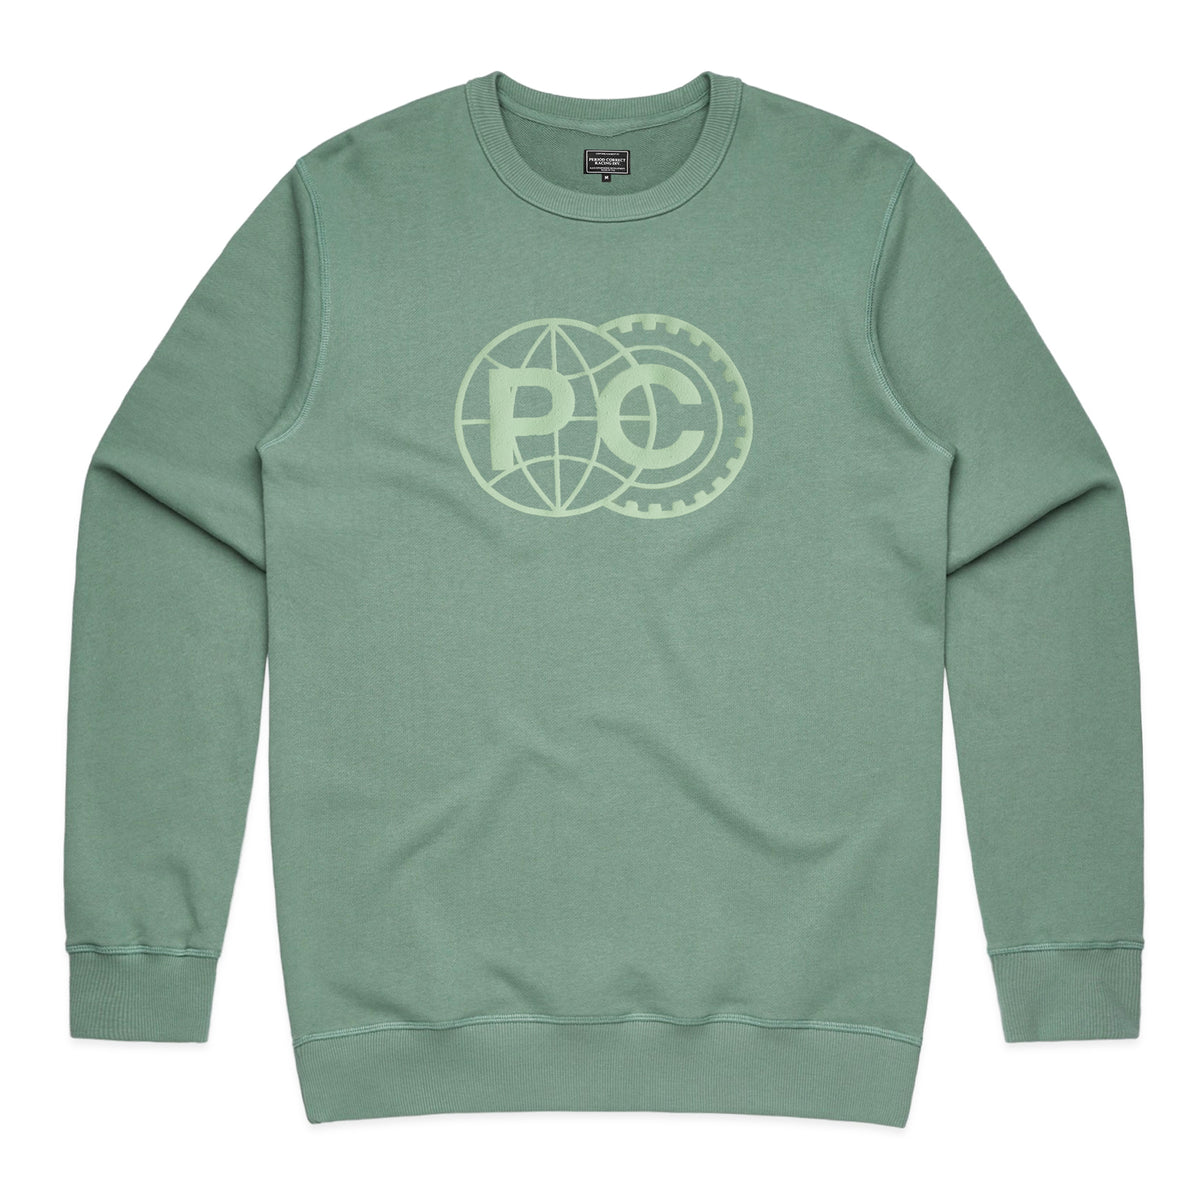 FIA FRENCH TERRY CREWNECK SWEATER